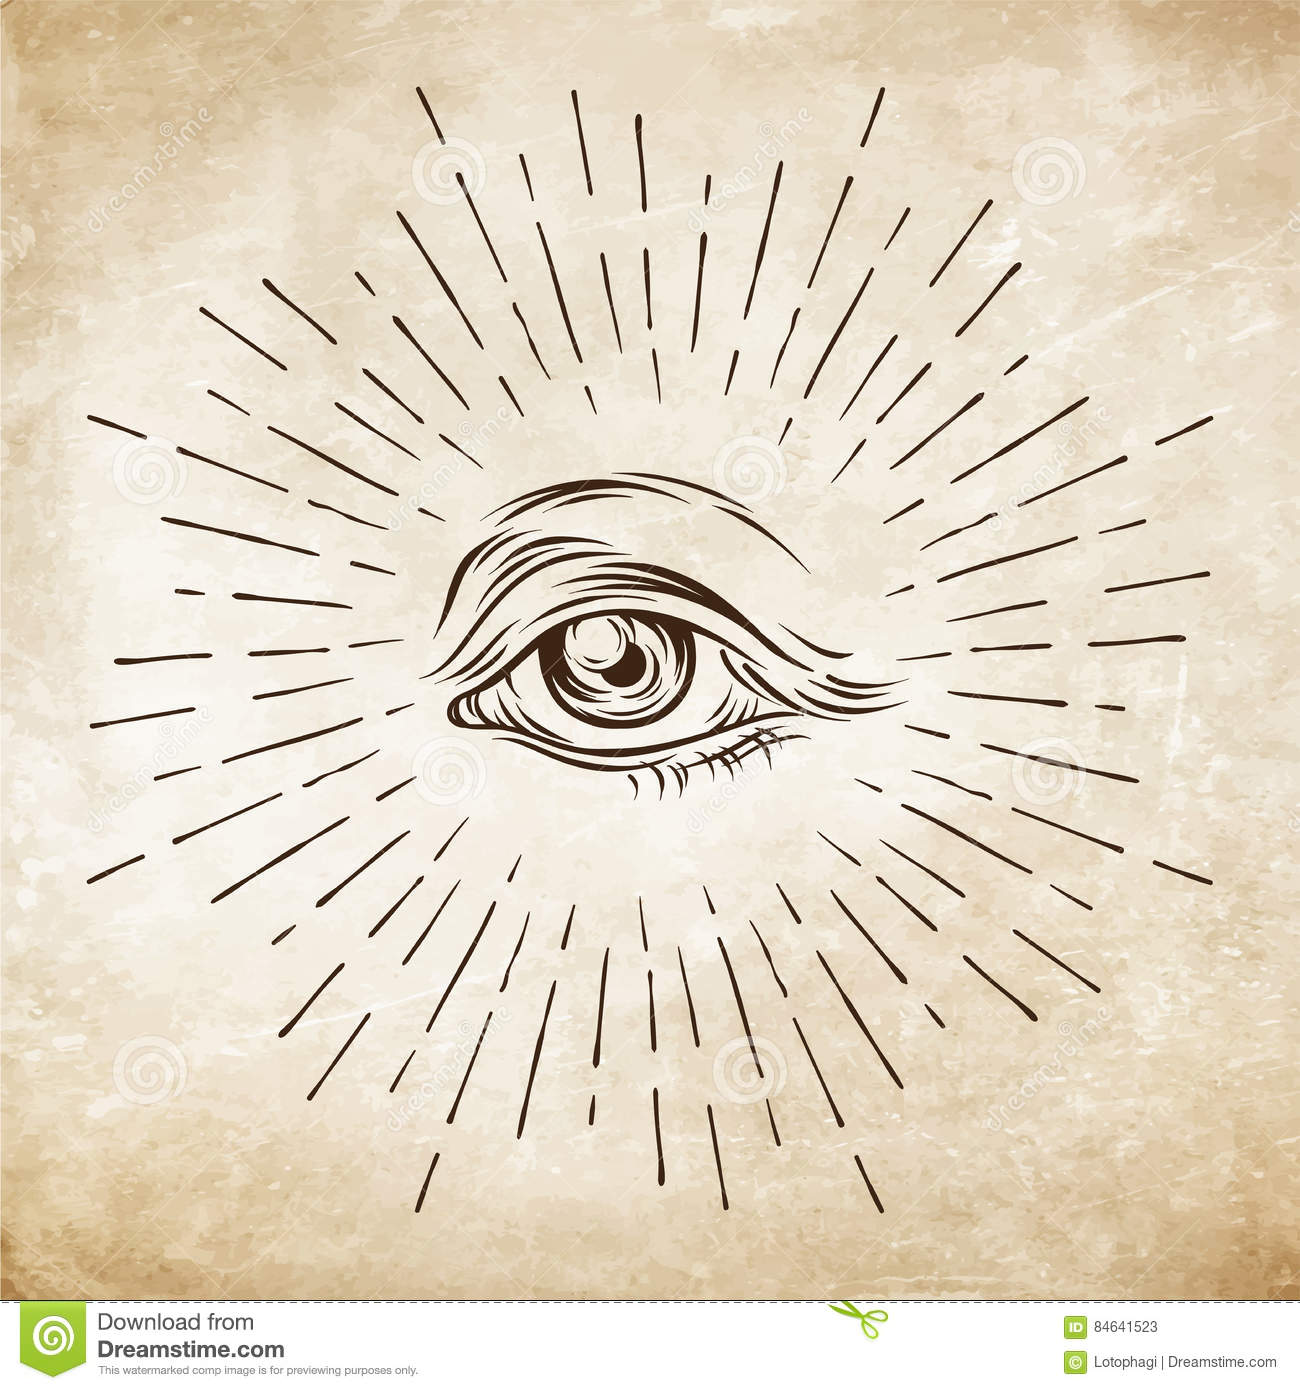 Hand Drawn Grunge Sketch Eye Of Providence Masonic Symbol All